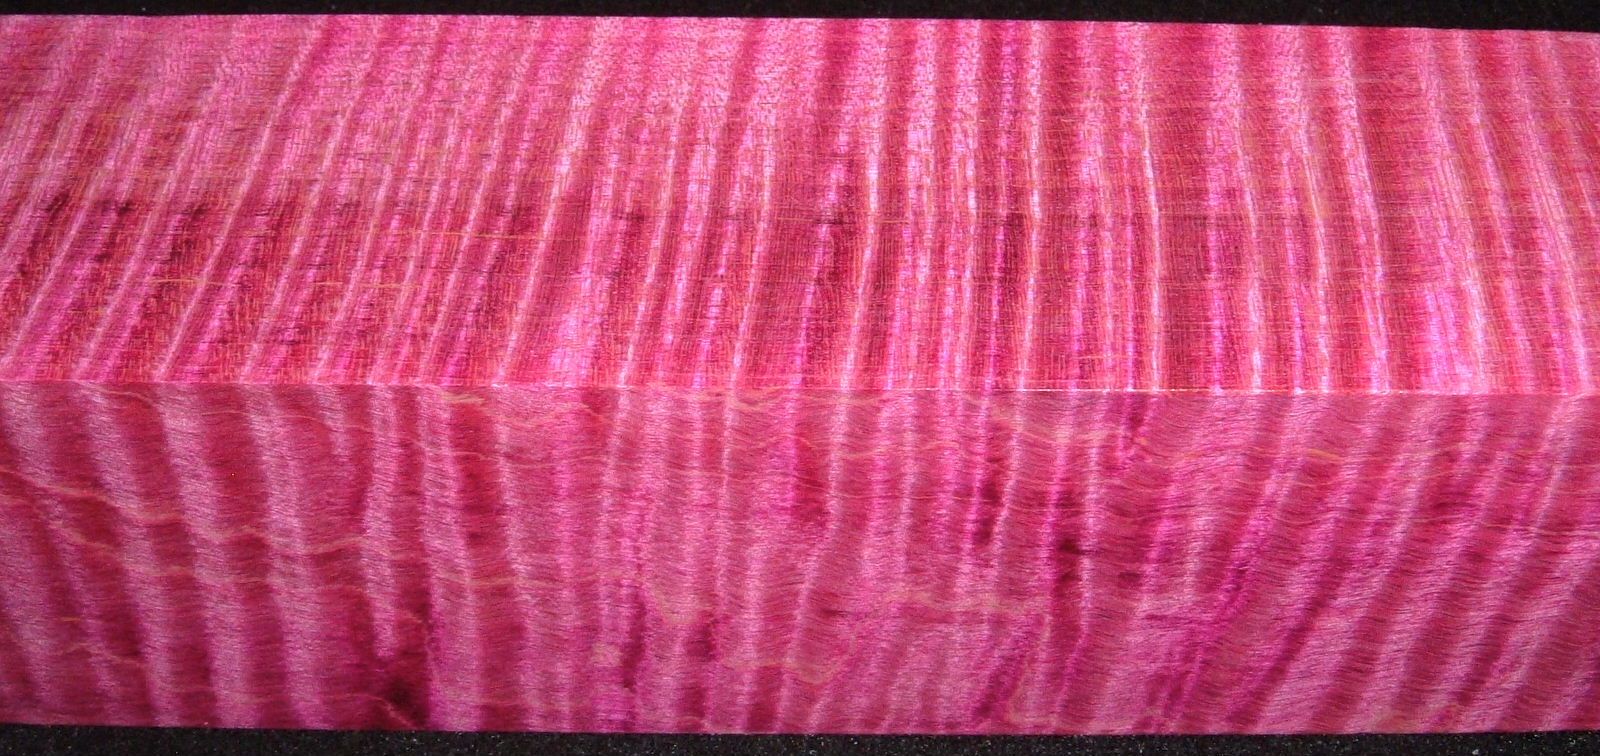 Z316, 1-7/8x1-7/8x7-1/4 ,Magenta, Curly Tiger Maple Dyed Stabilized, wood turning block